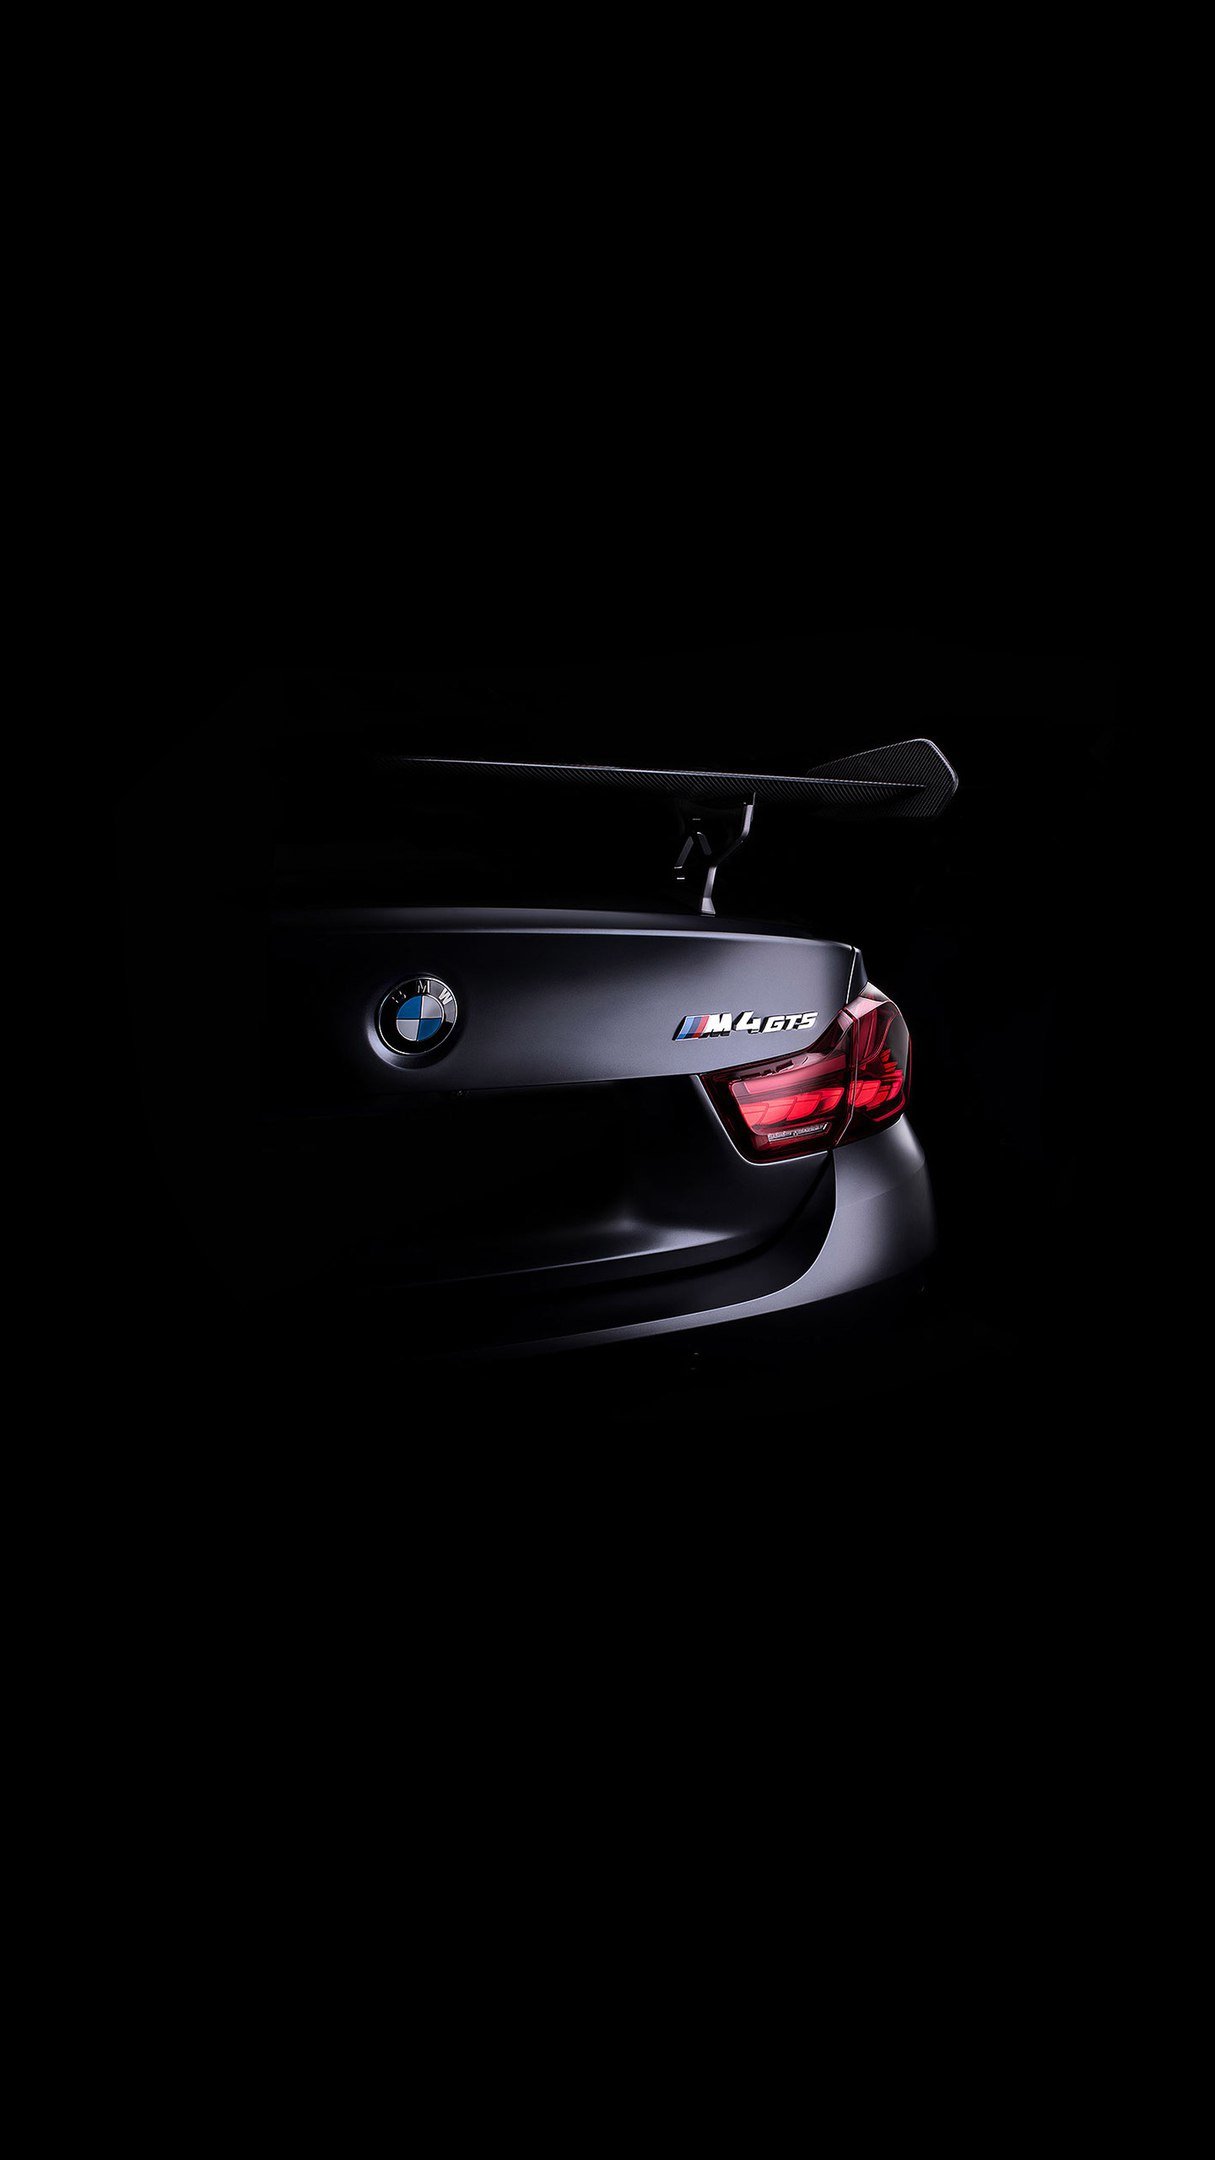 Bmw Car M4 Gts Iphone Wallpaper Iphone Wallpapers